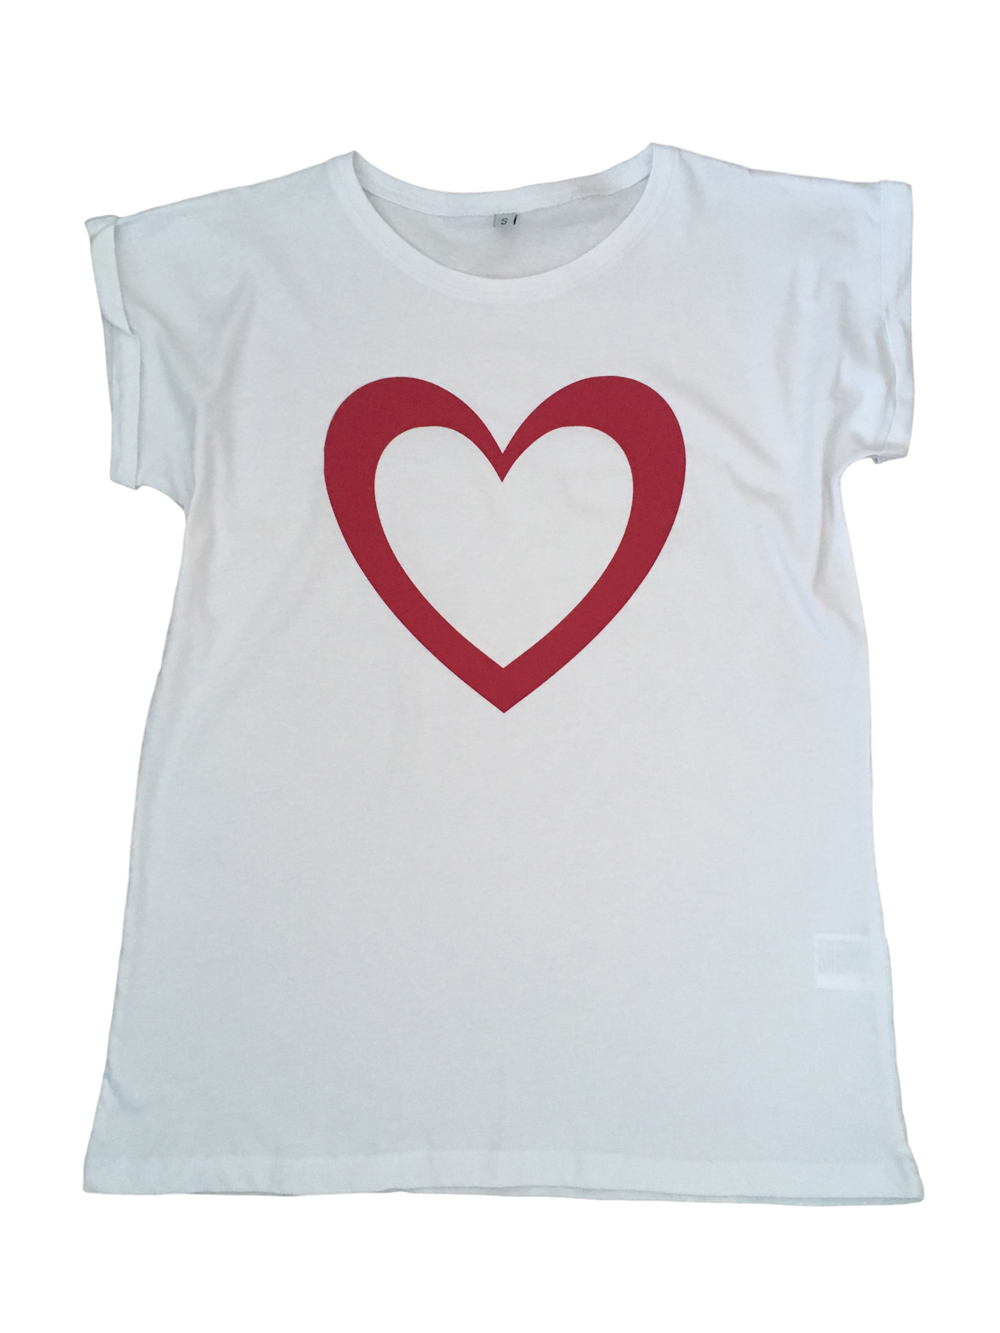 ADULT – White/pink Heart T-shirt – Small